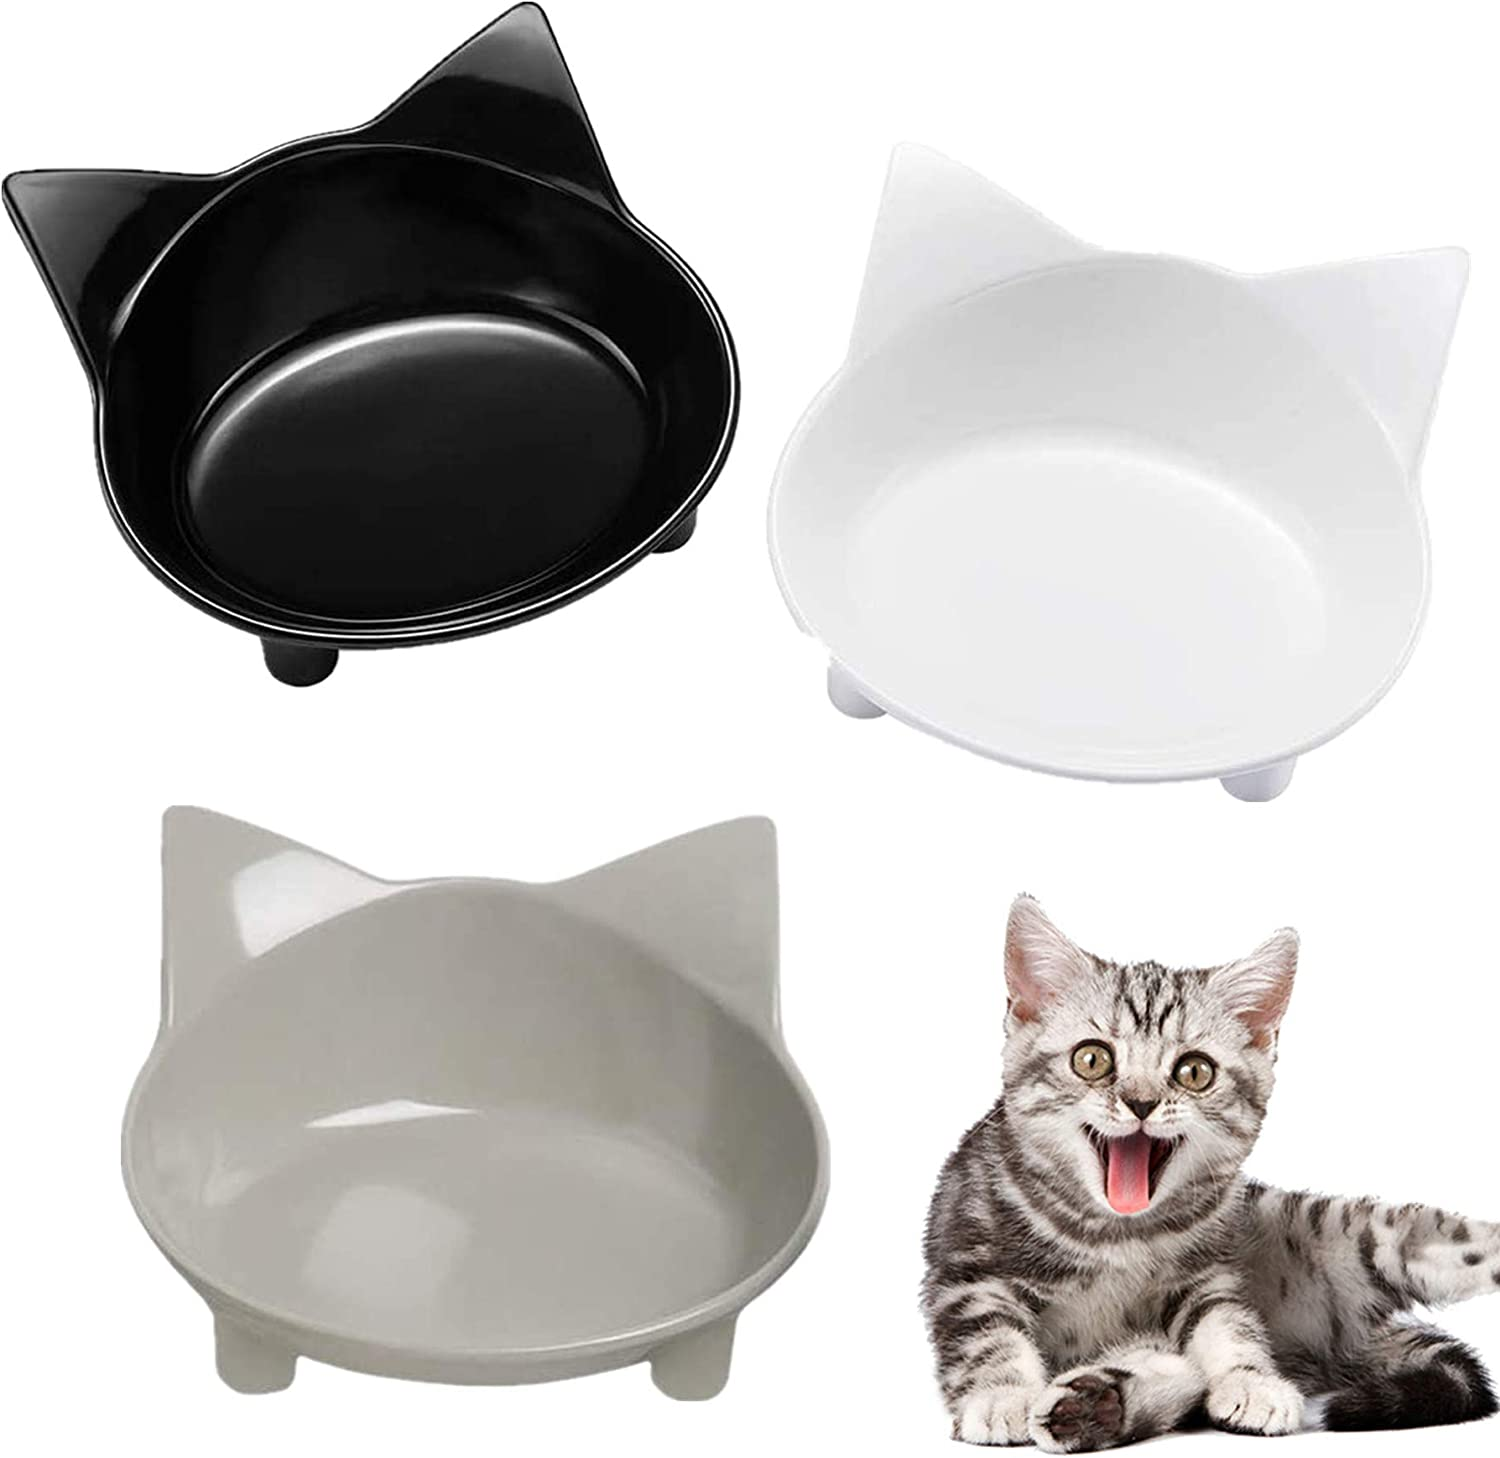 3 PCS Cat Bowls,Cilkus Cat Food Bowls Wide Cat Feeding Bowl for Relief of Whisker Fatigue Pet Food & Water Bowls for Small Dogs Cats and Pets(Safe Food-Grade Material)